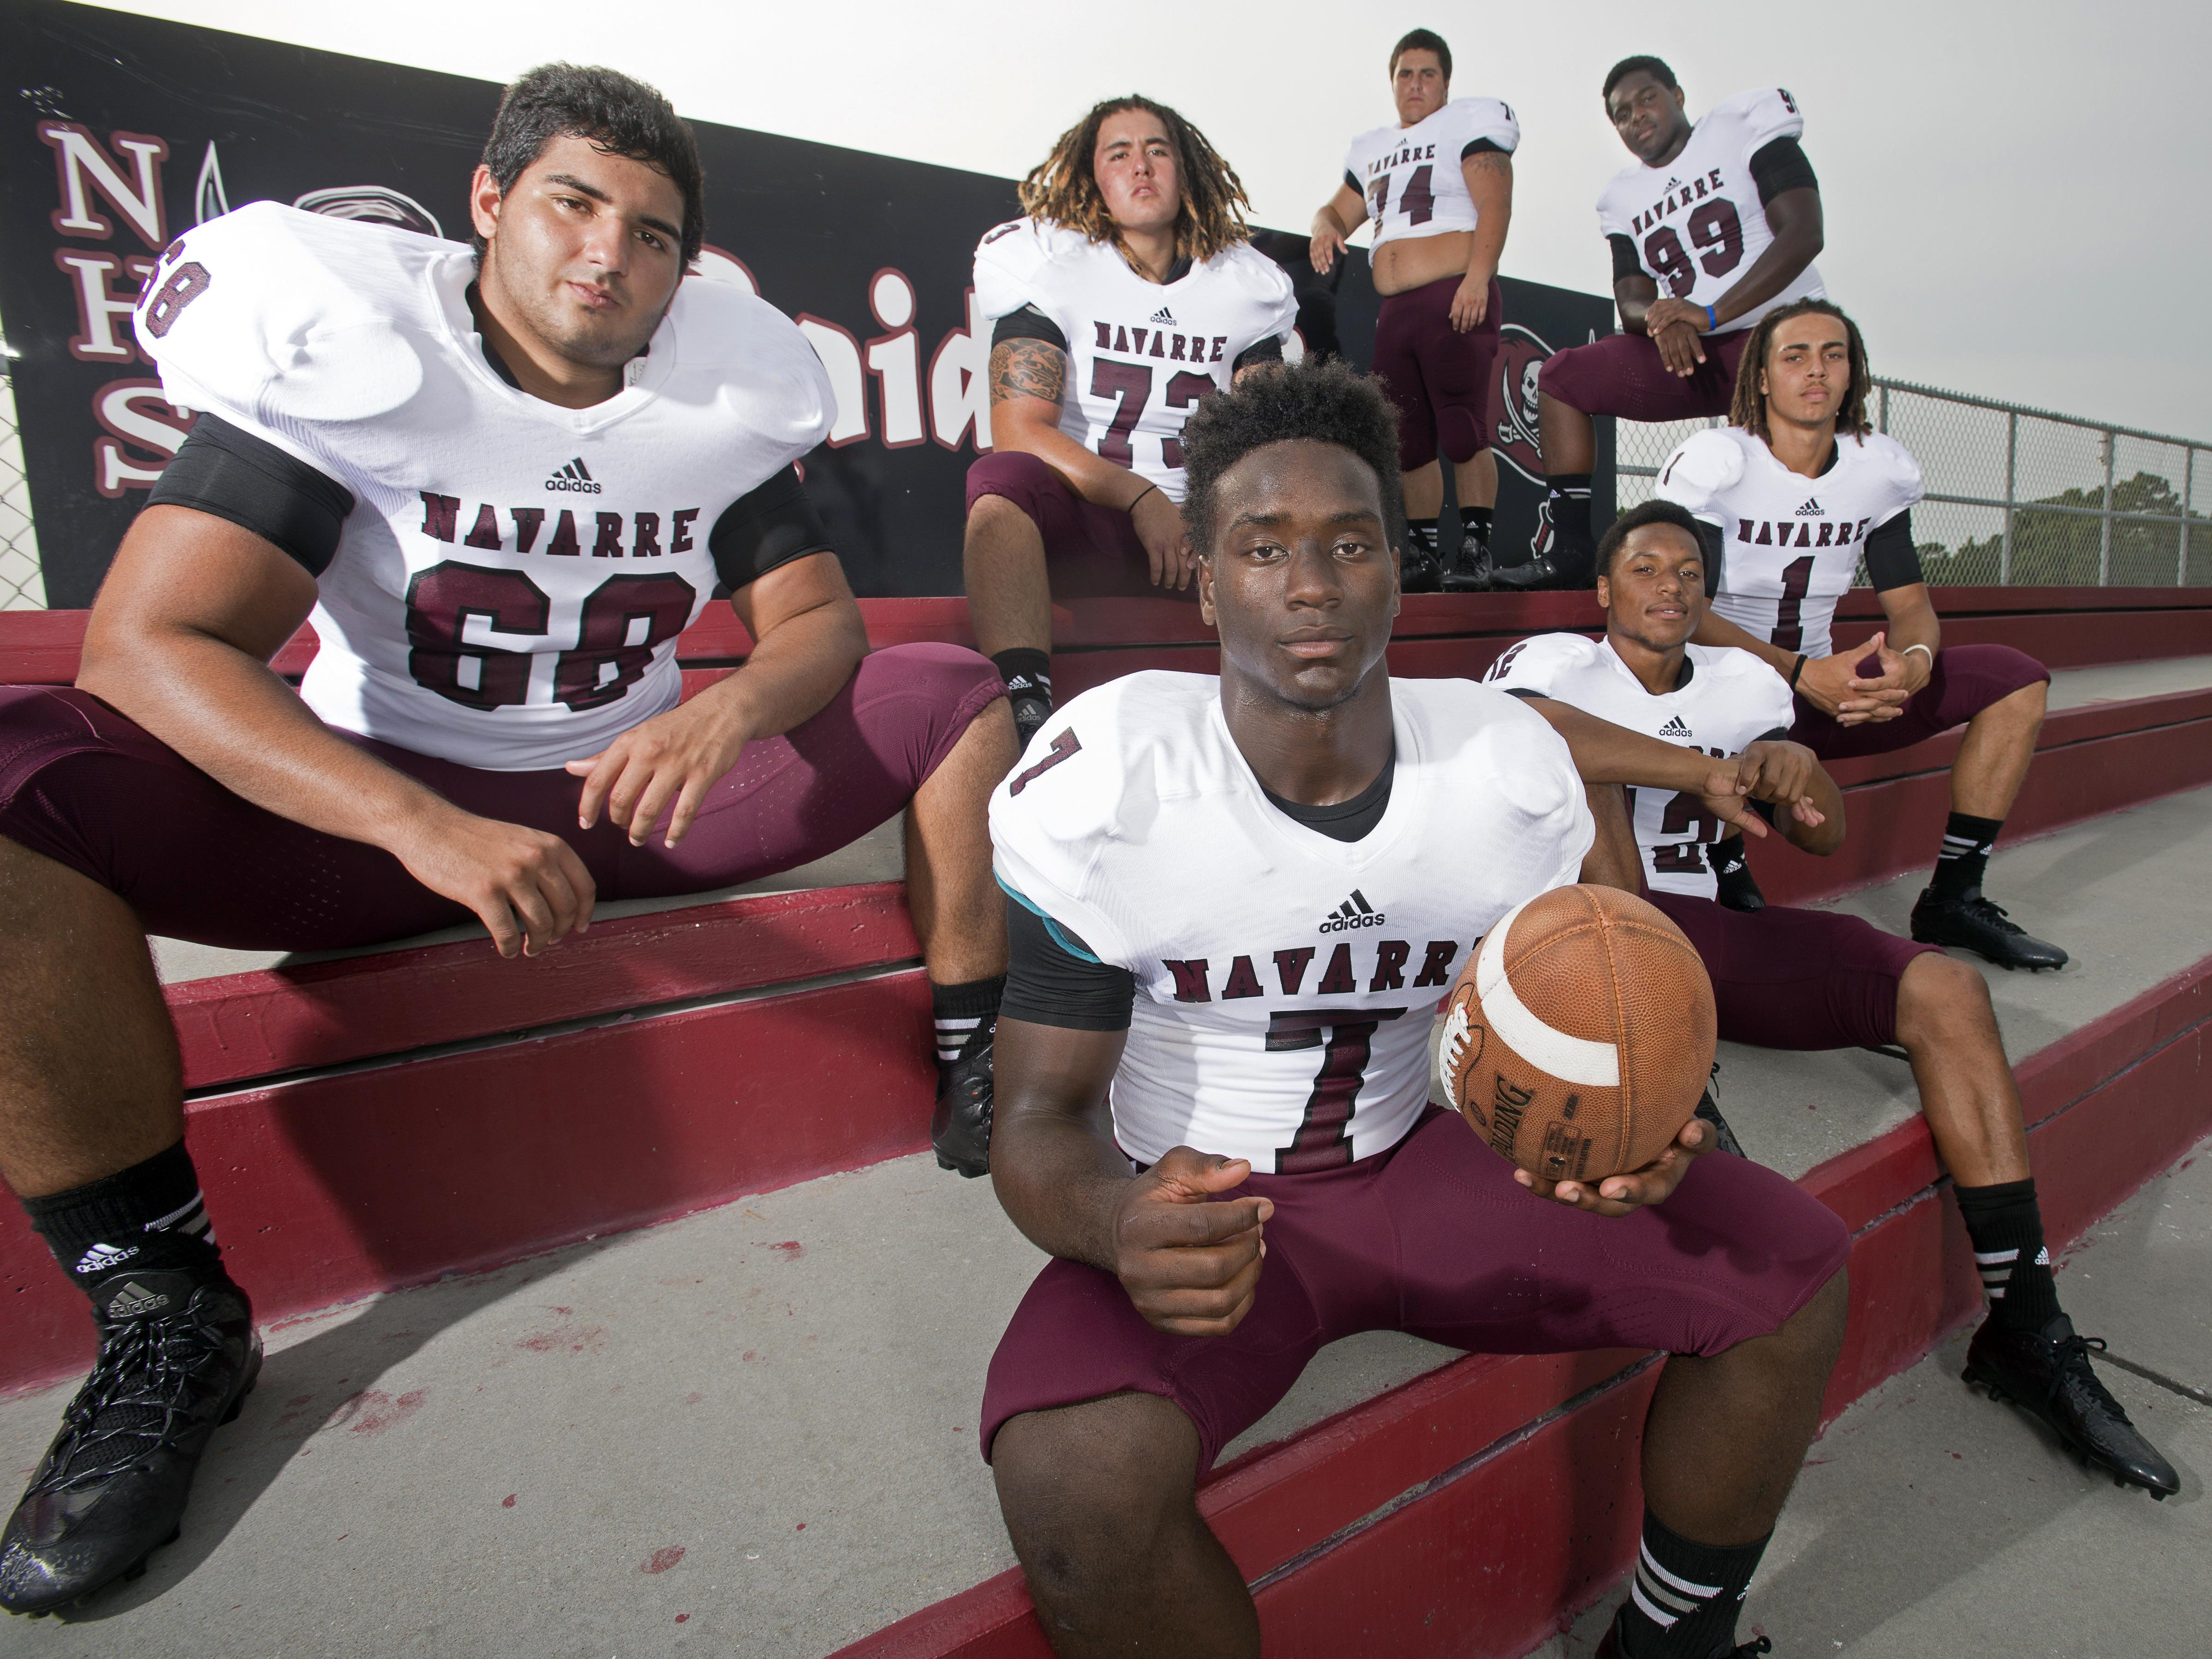 Navarre Football's impact players return to the squad this season are L to R: Nick Brahms (68), Corey Capenia, Michael Carter (7), Brent Short (74), Michael Sandle (12), Anthony Miller (99) and Thomas Leggett (1).